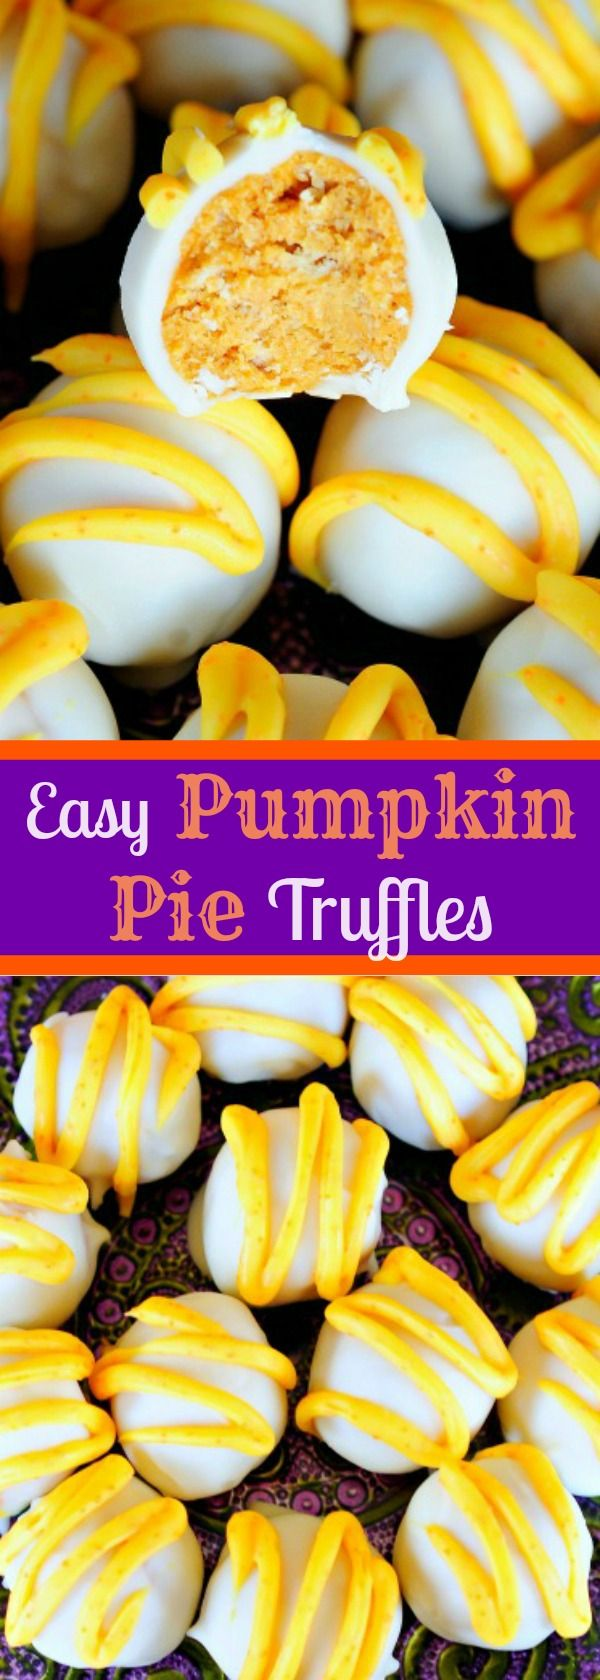 Easy Pumpkin Pie Truffles - These are INSANE! SO so so good!